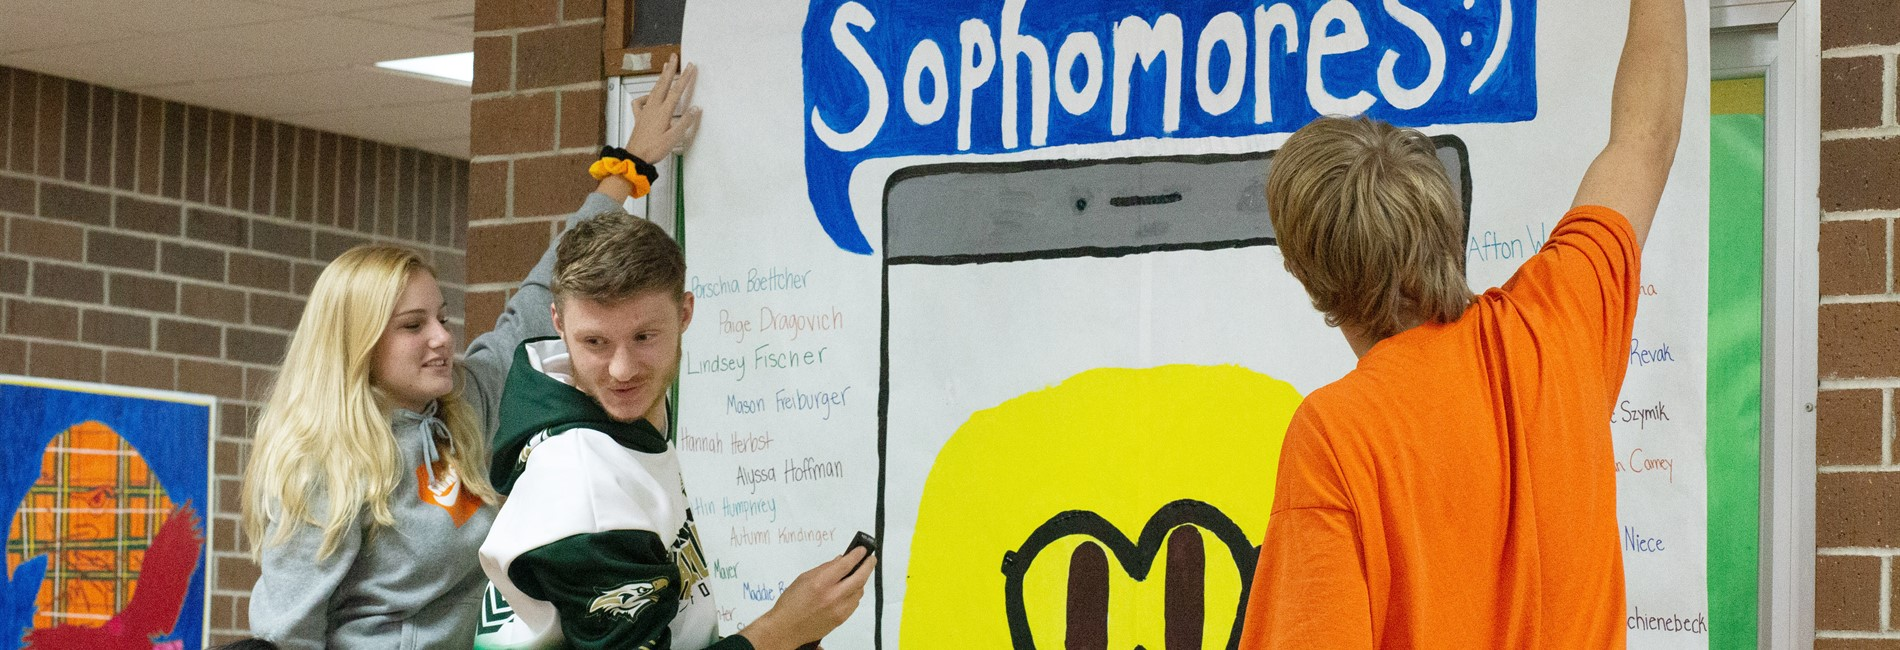 Sophomores hanging their class banner for Homecoming